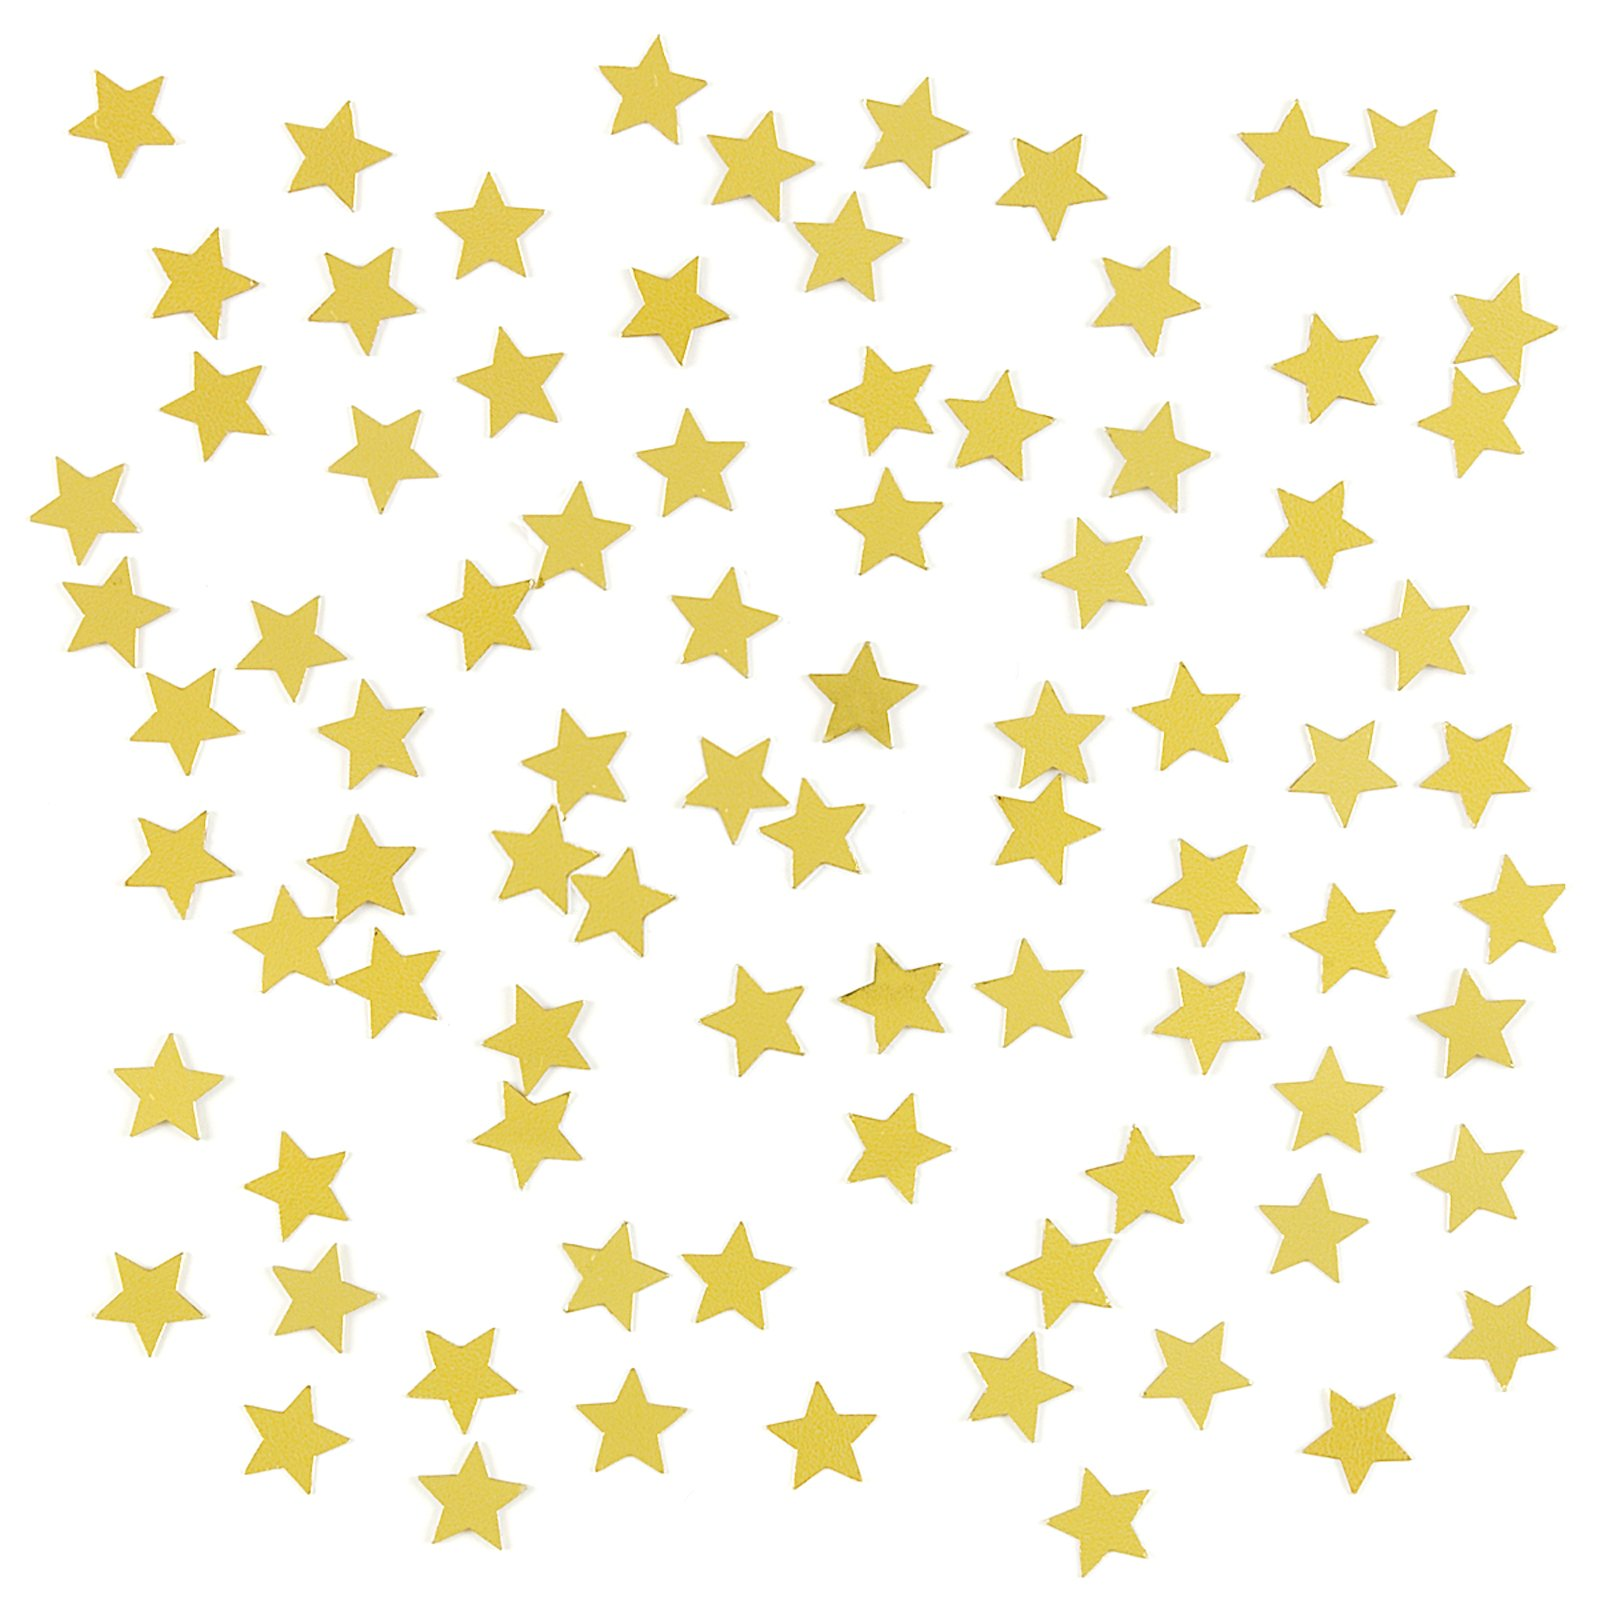 Background clipart star #5